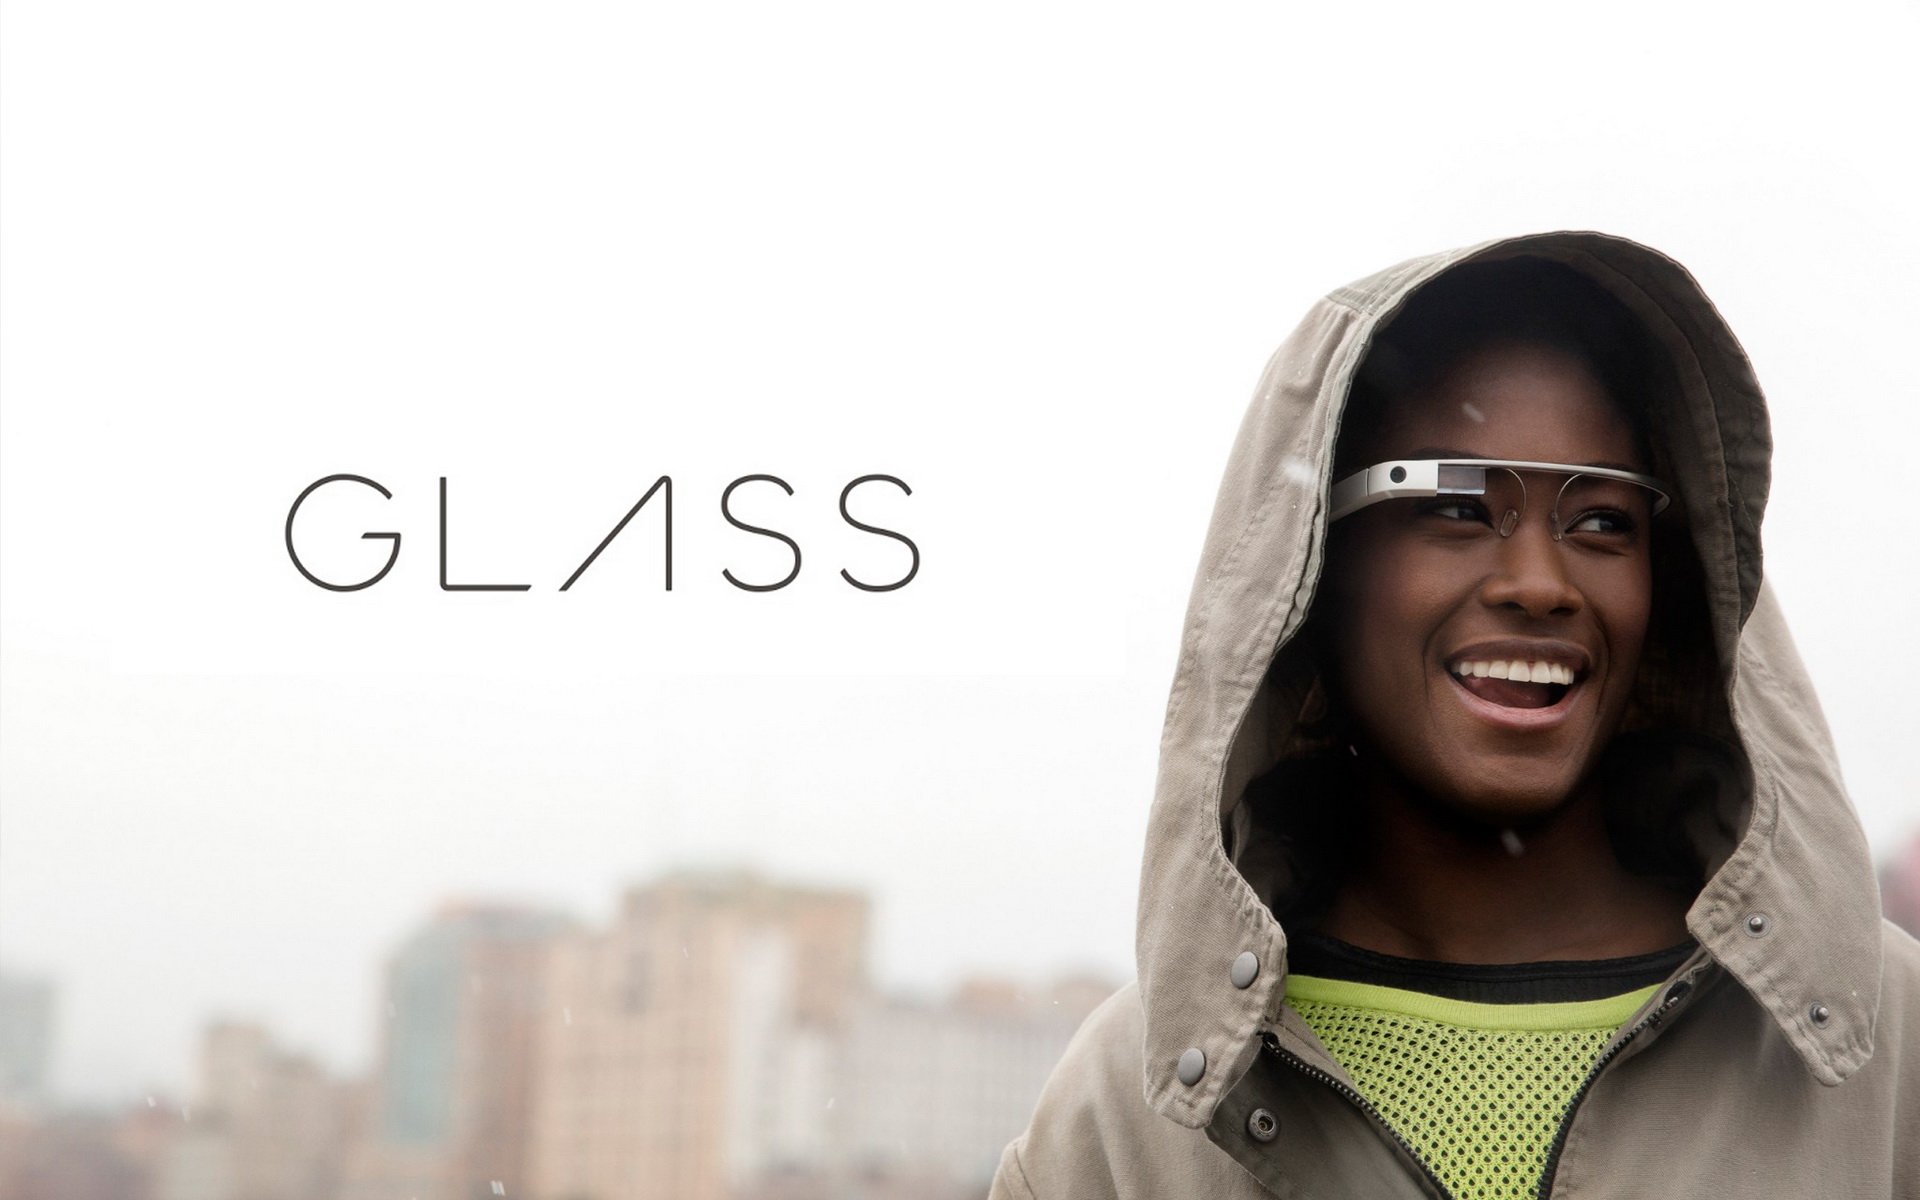 google_glass_hd